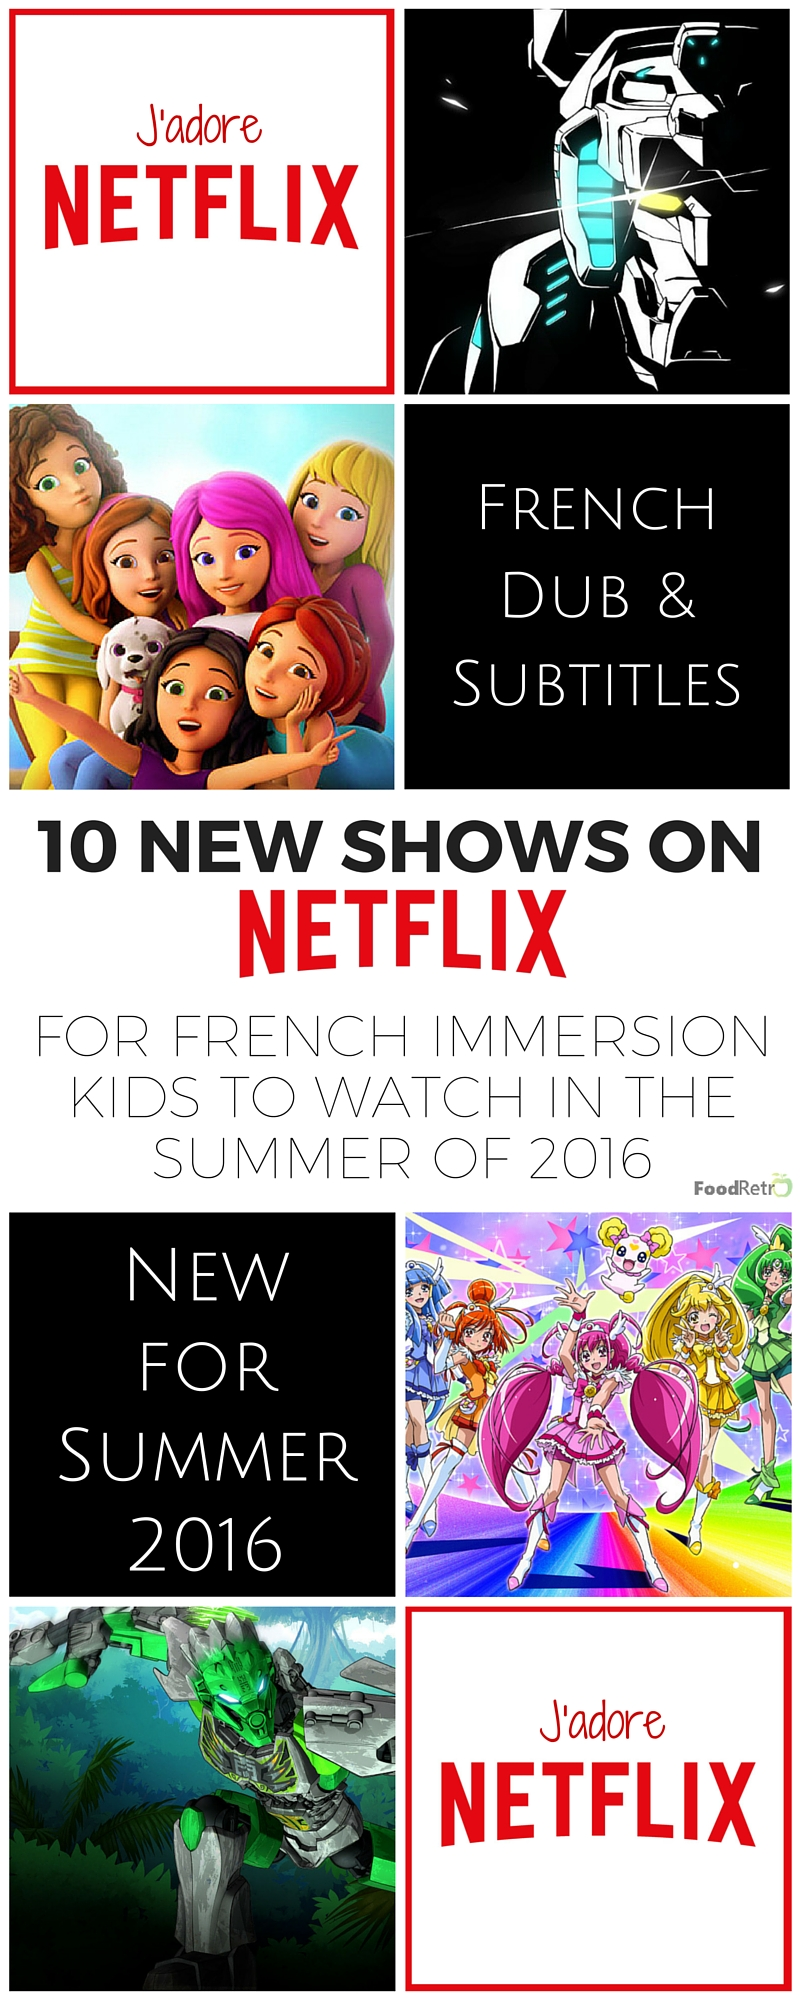 10 New French Dubbed & French Subtitled Shows on Netflix for Kids